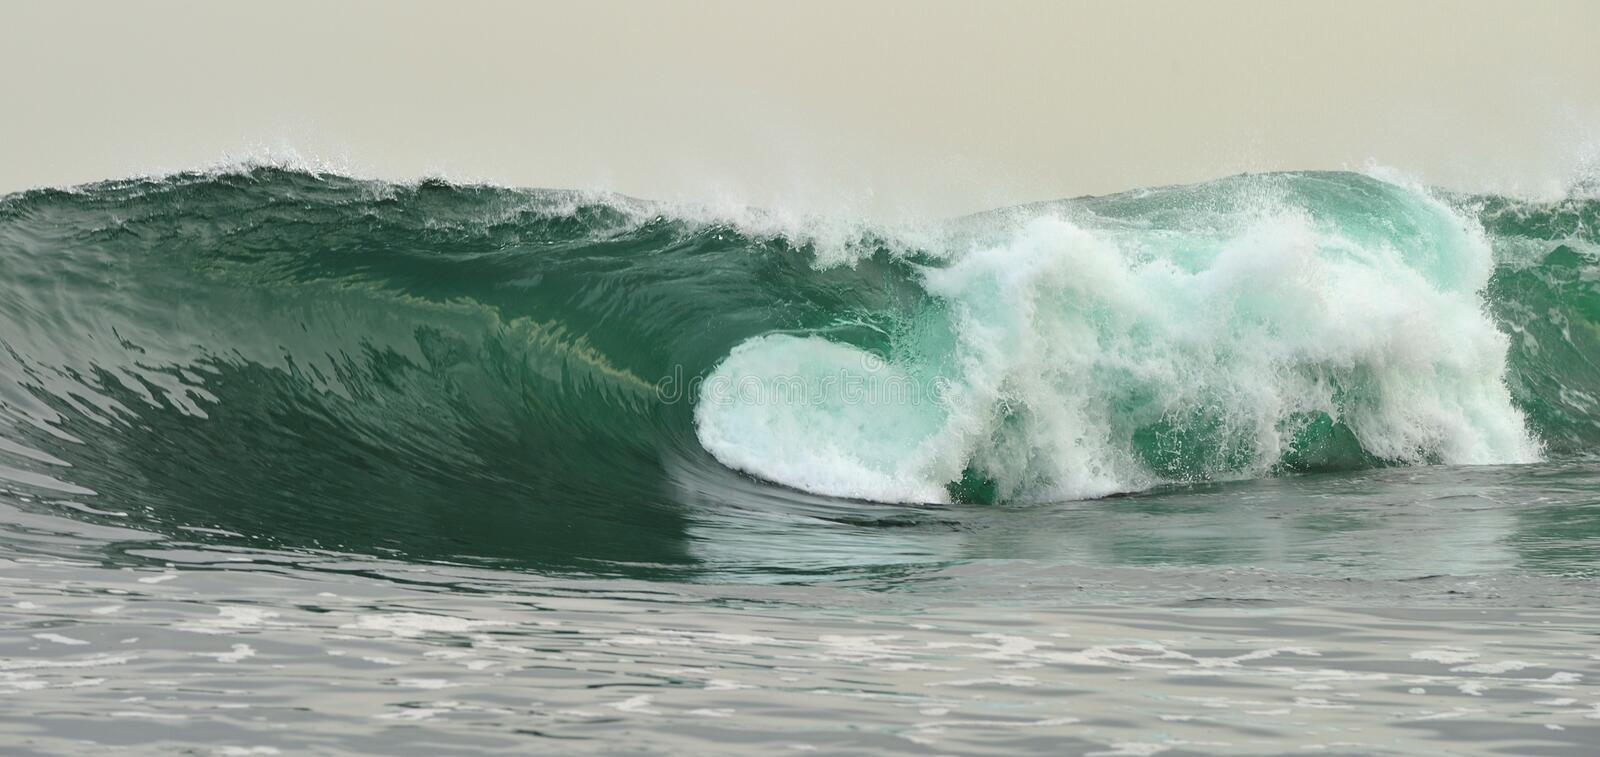 Powerful ocean wave breaking. Wave on the surface of the ocean. Wave breaks on a shallow bank. Natural background stock image